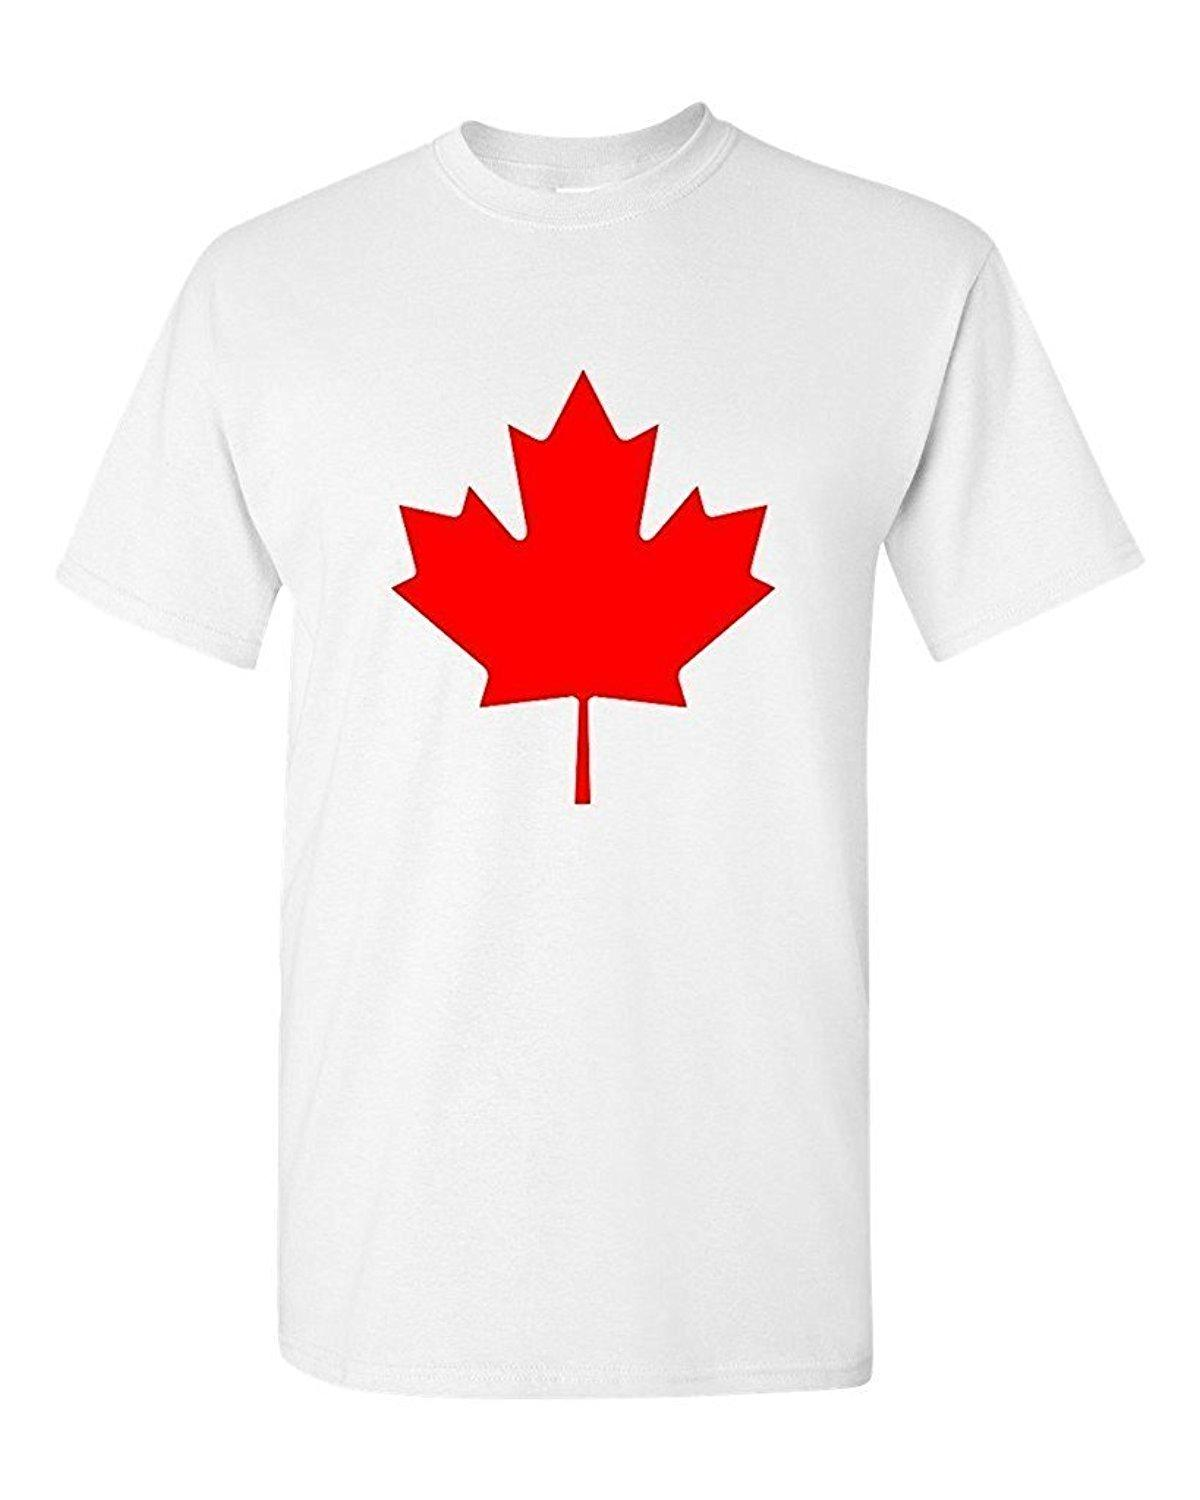 Paint print cheap t shirtcanada maple leaf unisex t shirt for Personalized t shirts canada